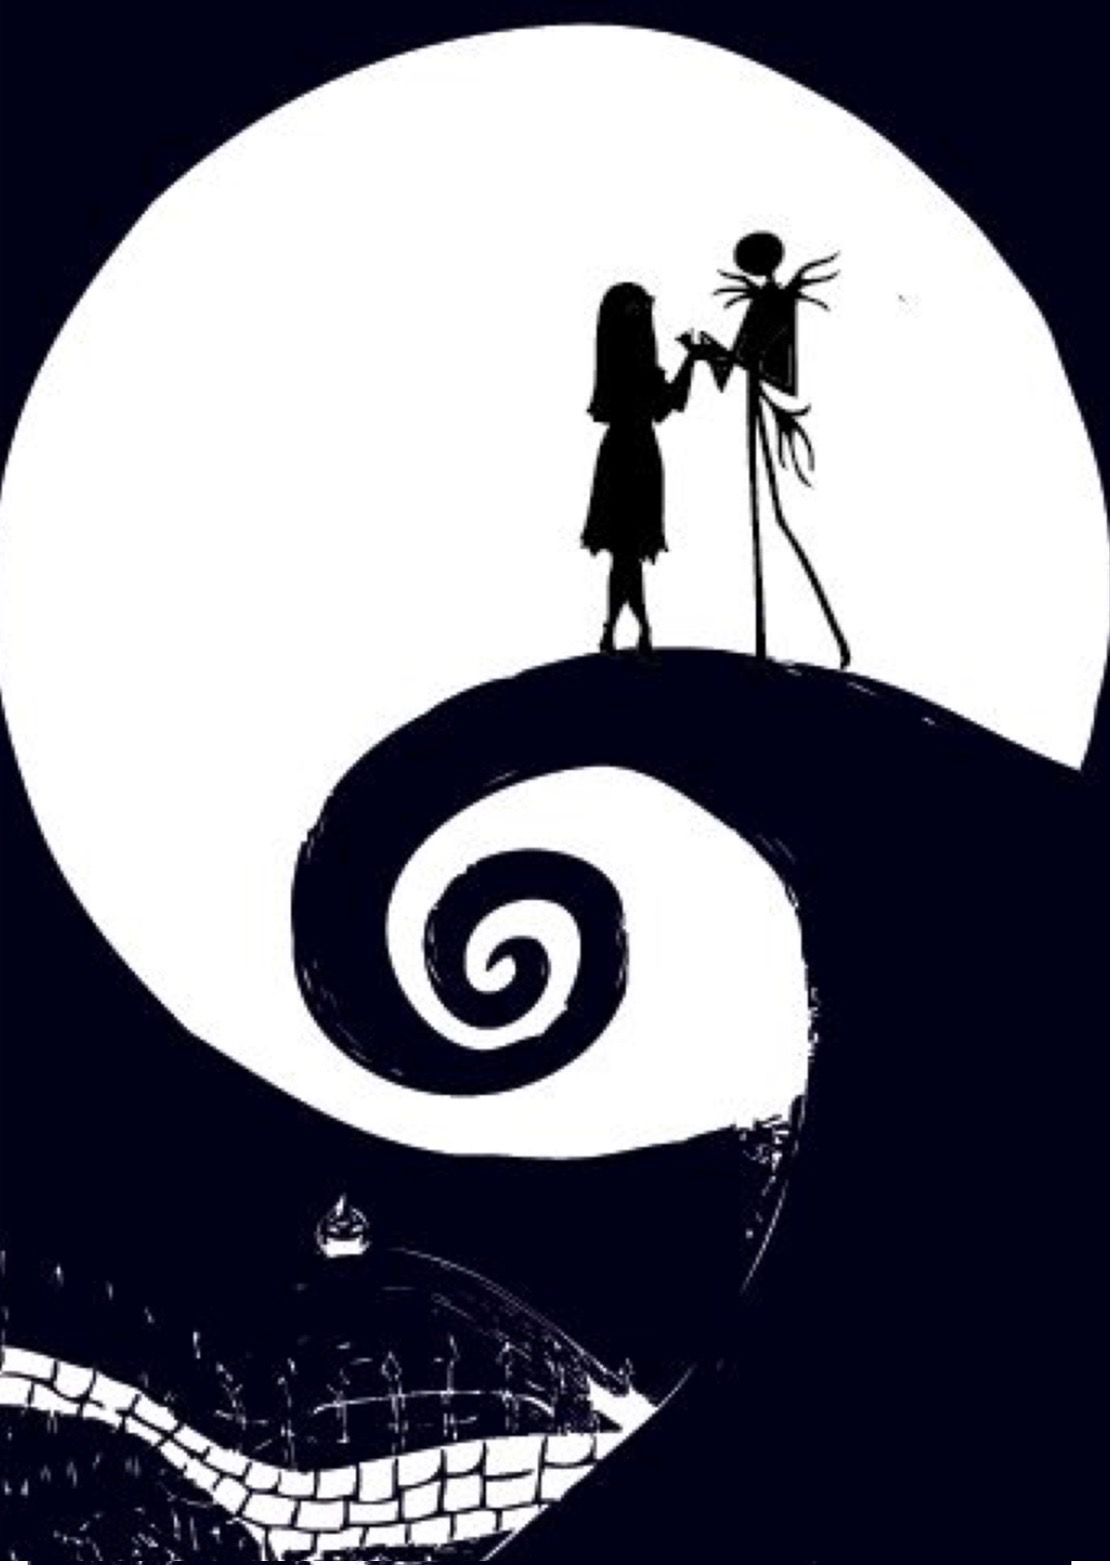 Pin By Patricia On Halloween Nightmare Before Christmas Wallpaper Nightmare Before Christmas Christmas Wallpaper